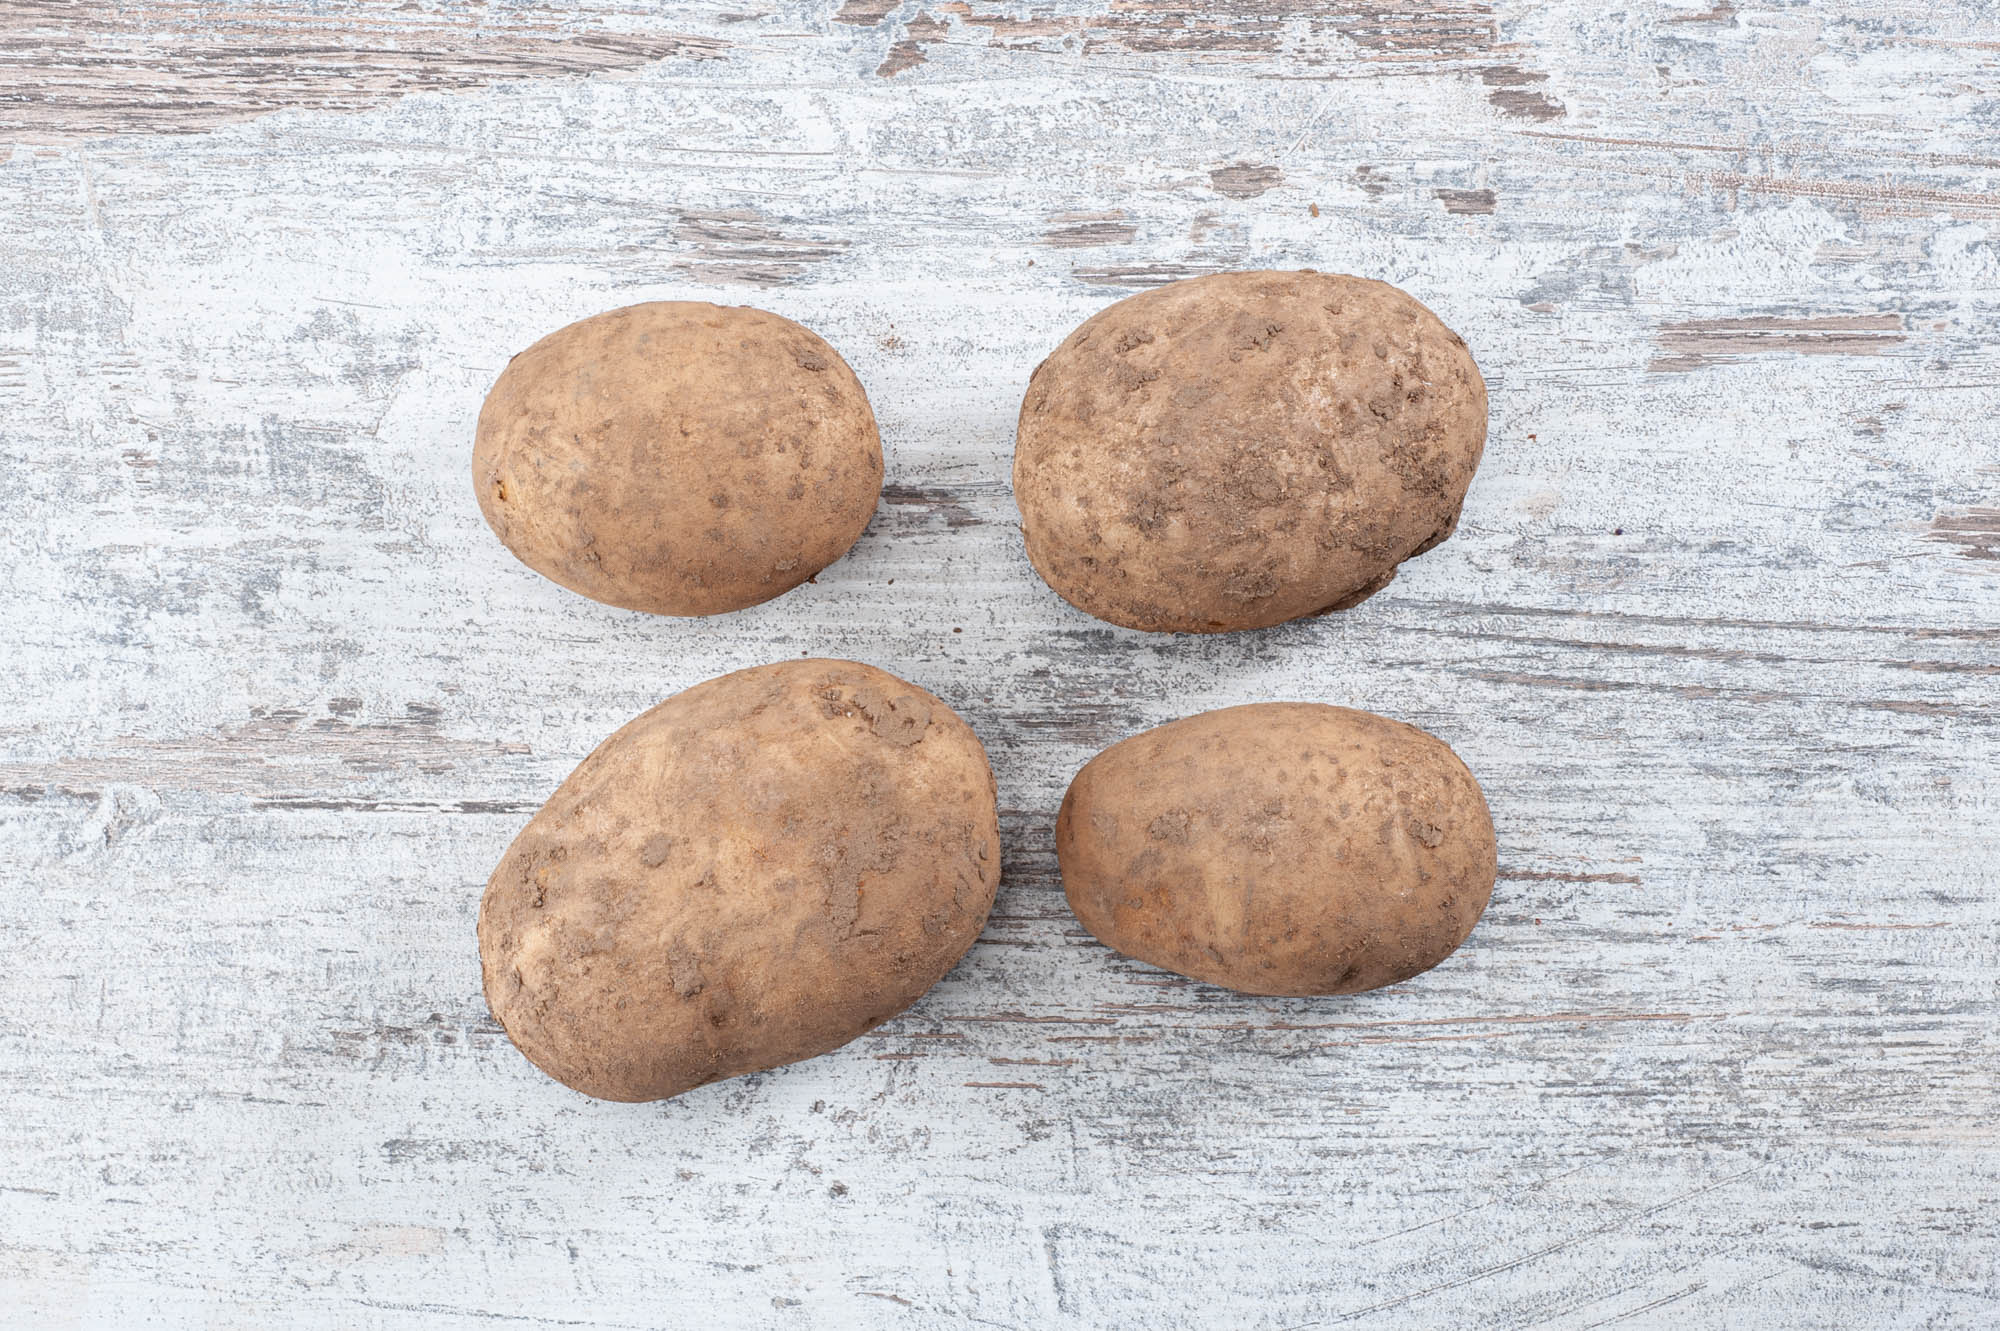 Navan potatoes